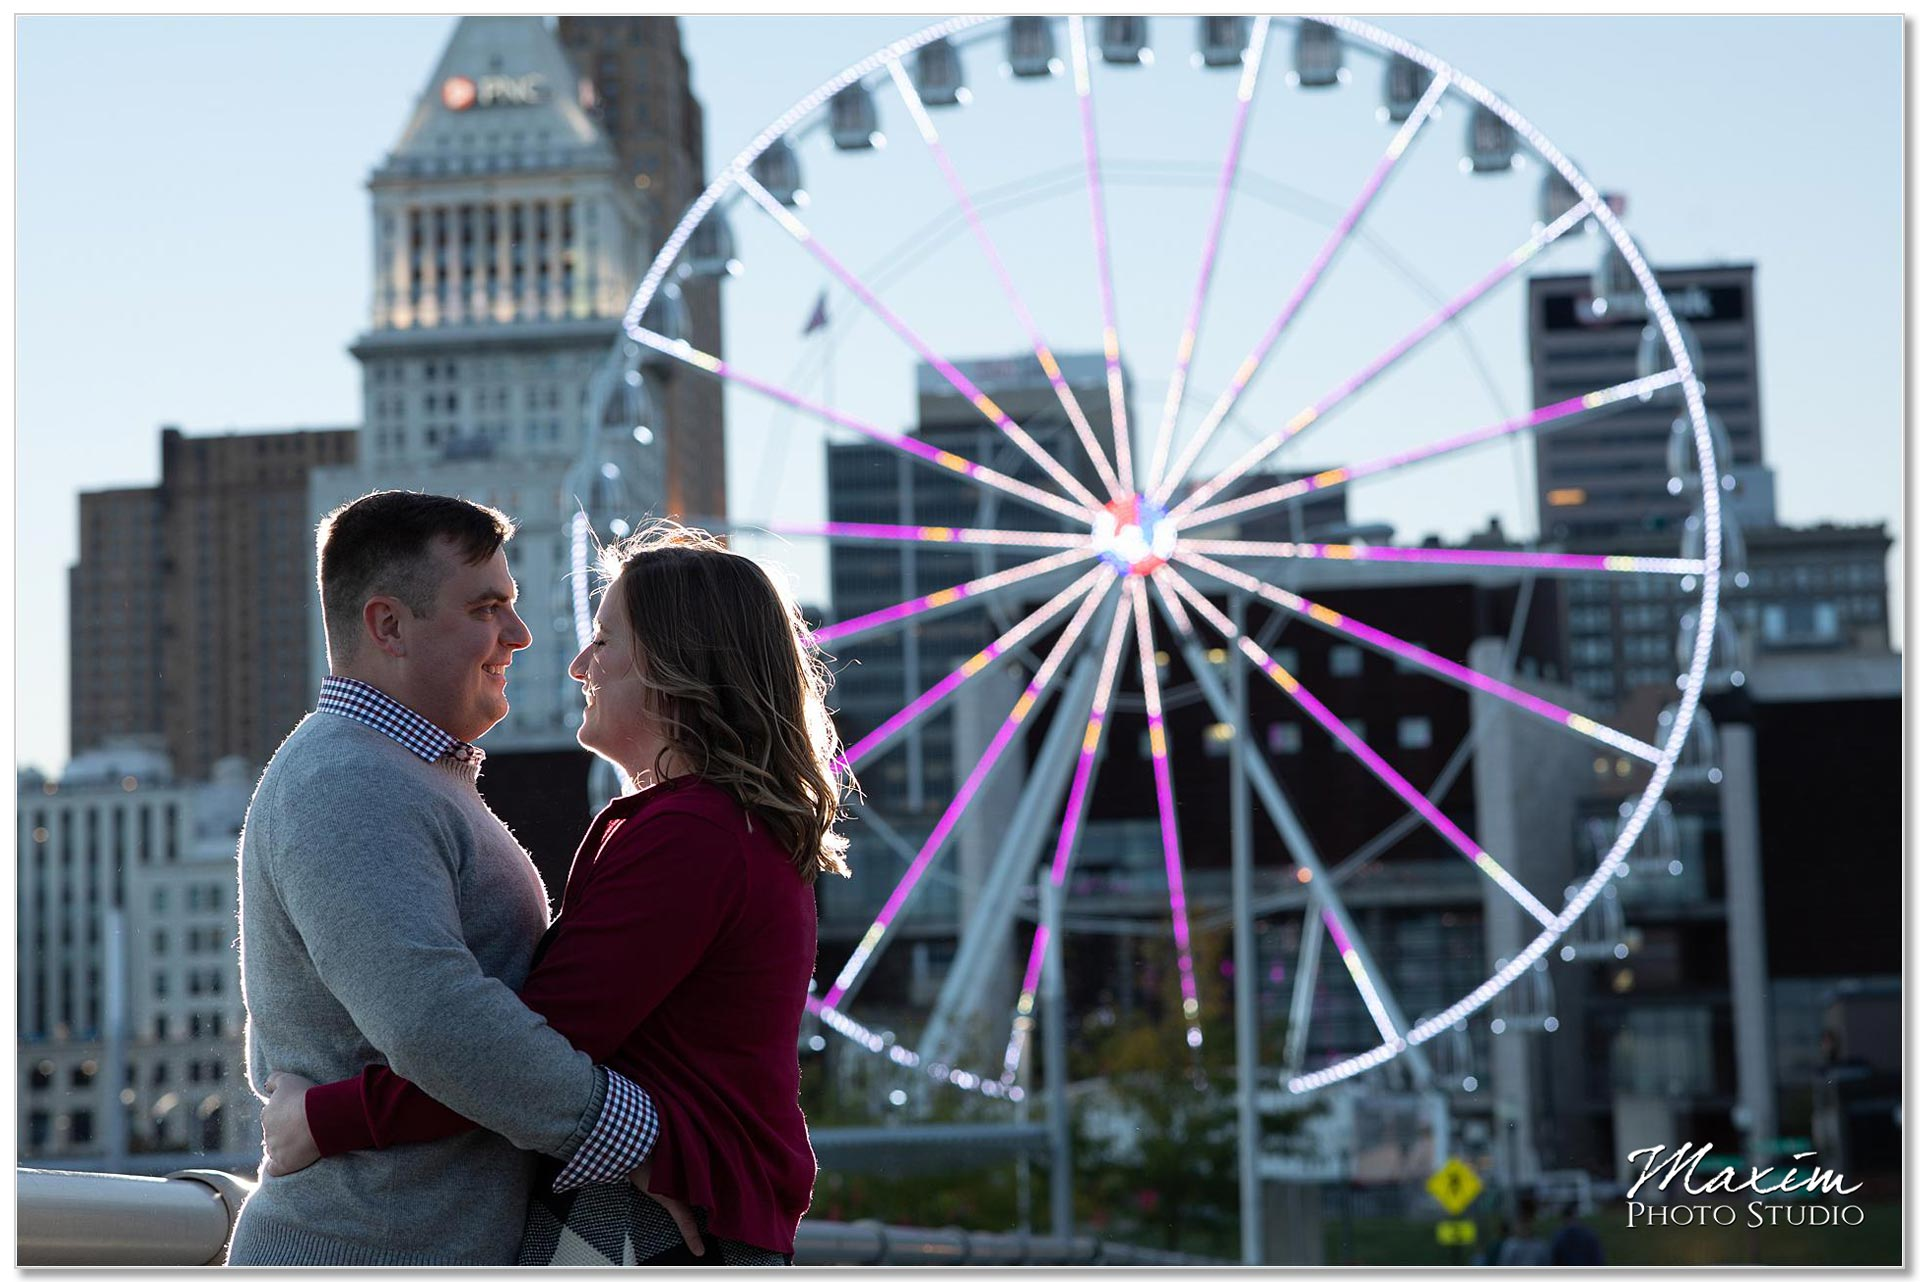 Skystar Cincinnati Engagement